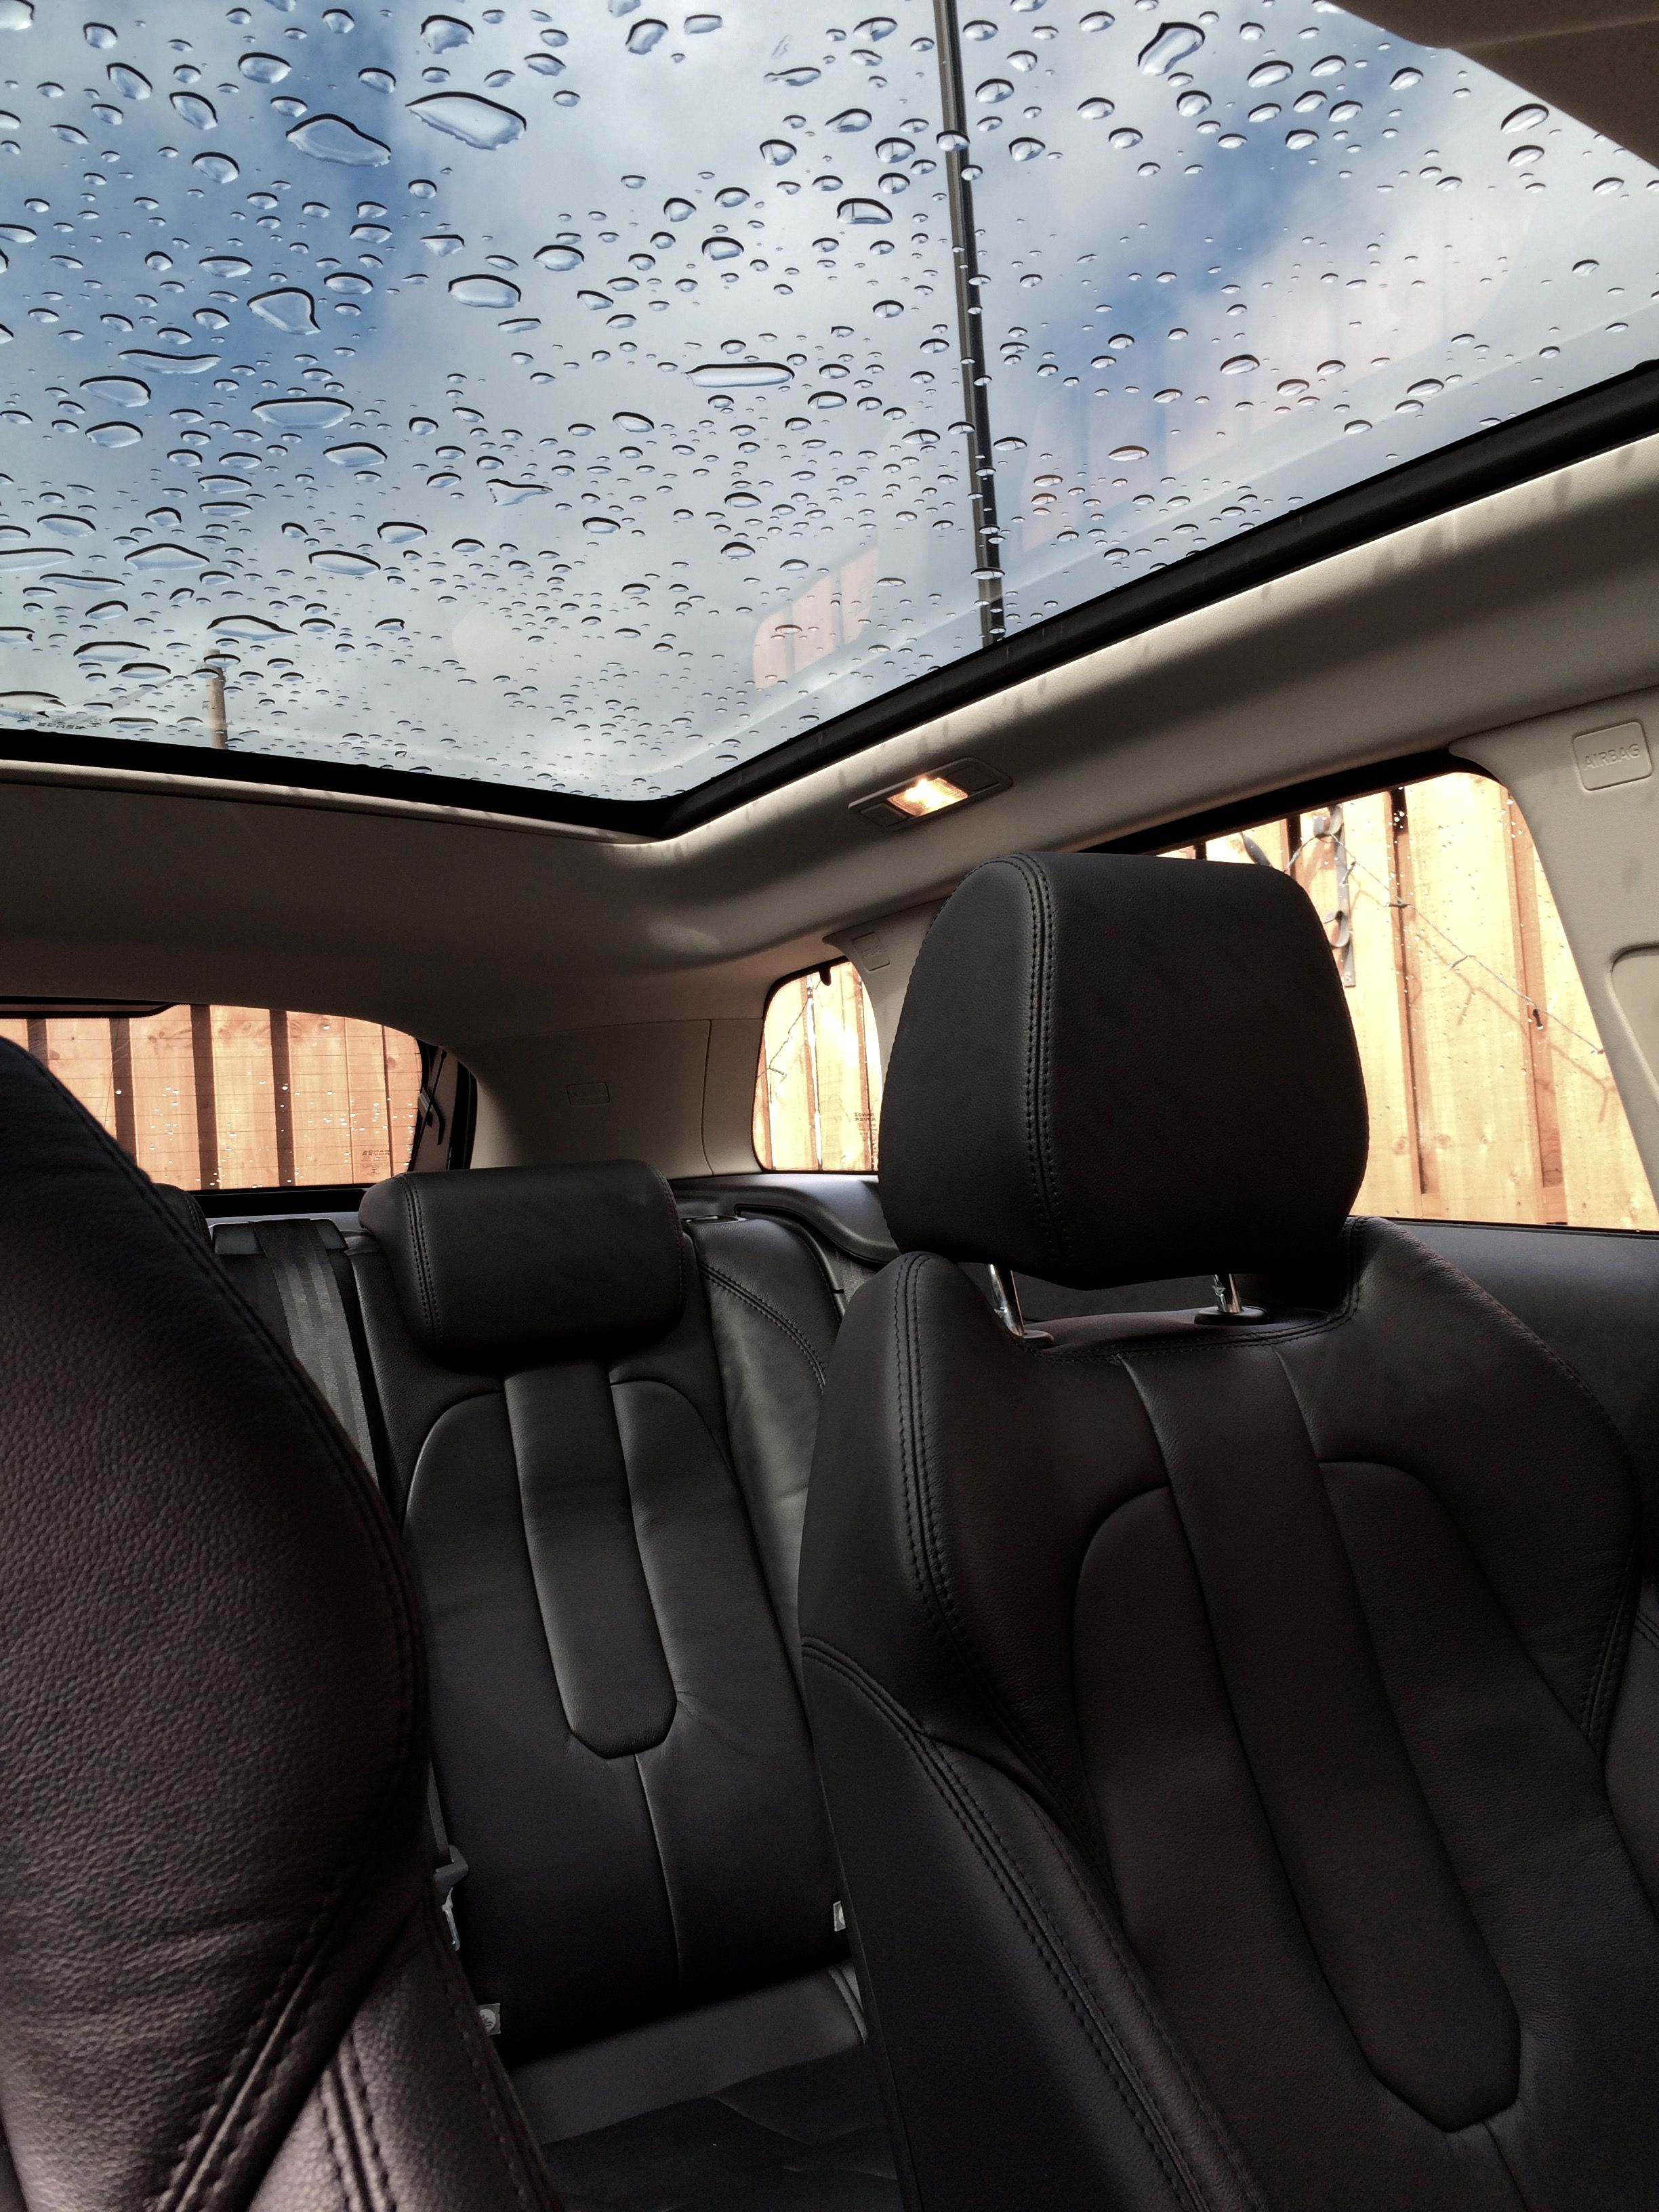 #Panoramic Roof After Rainfall. Range Rover Evoque. #Leather #Black